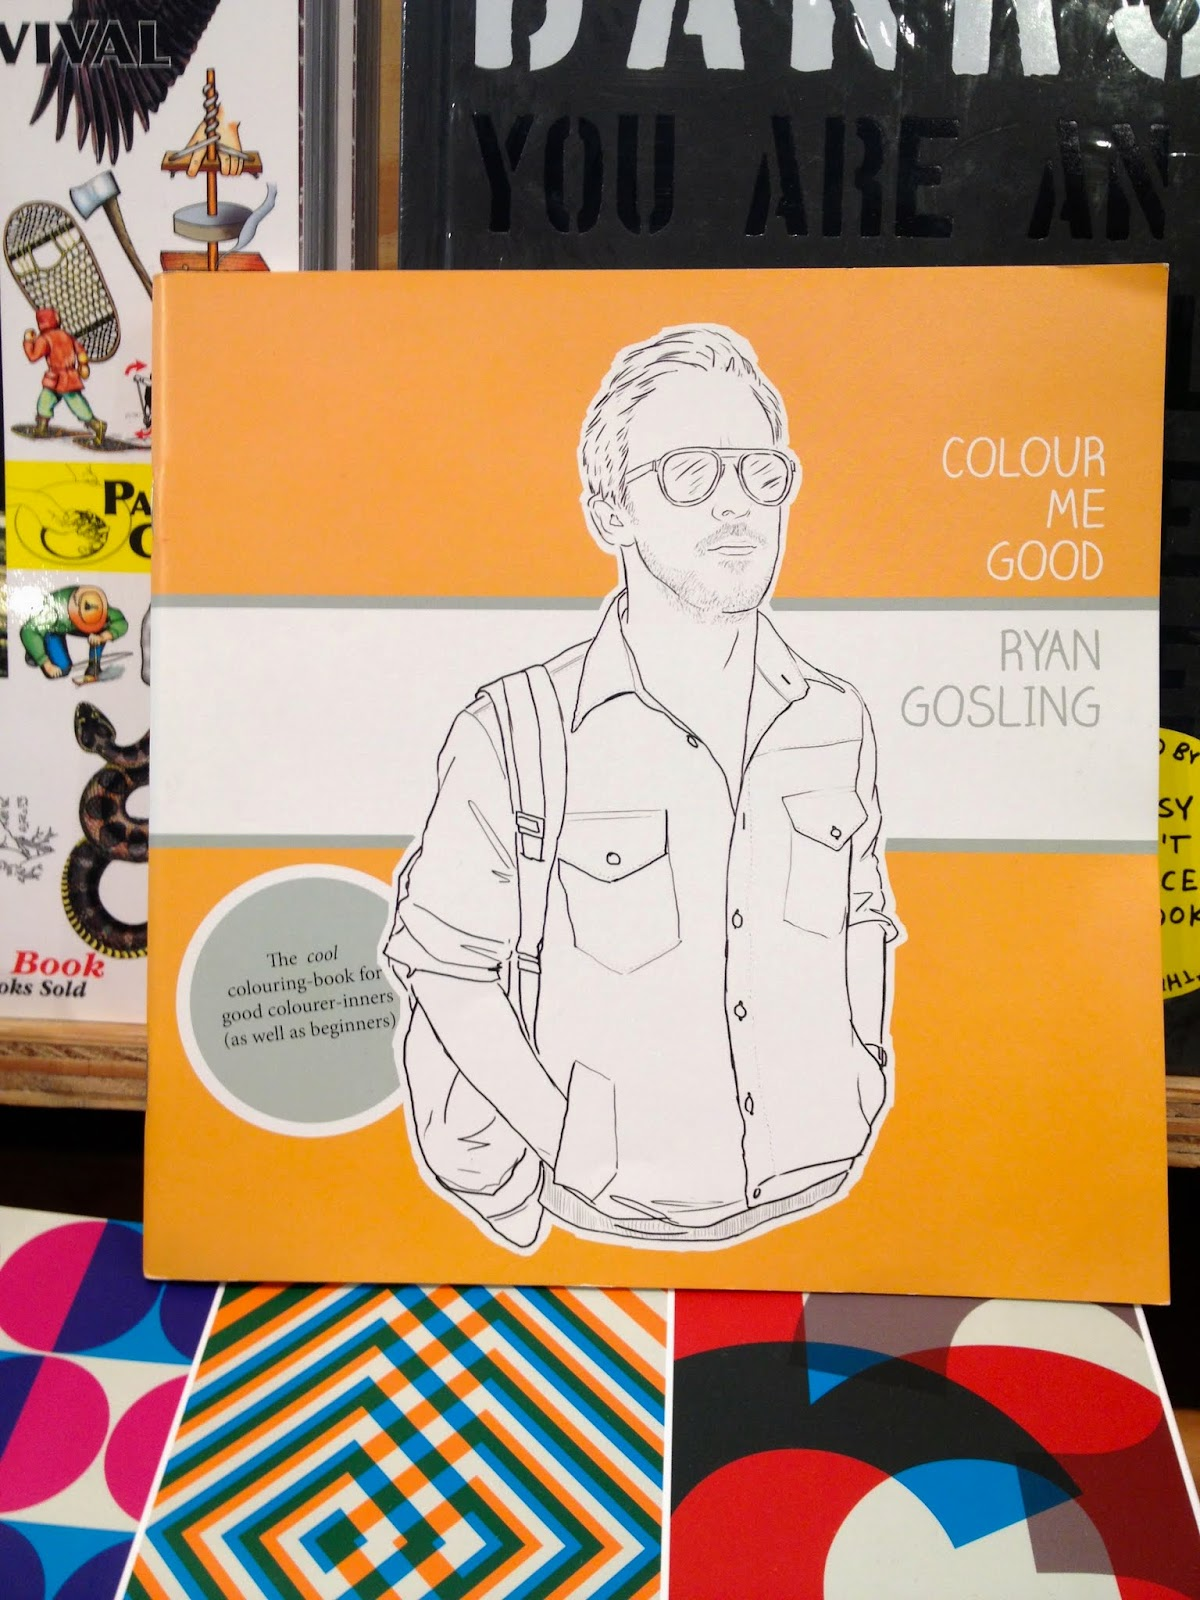 Today 2019s gossip: a ryan gosling colouring book is released